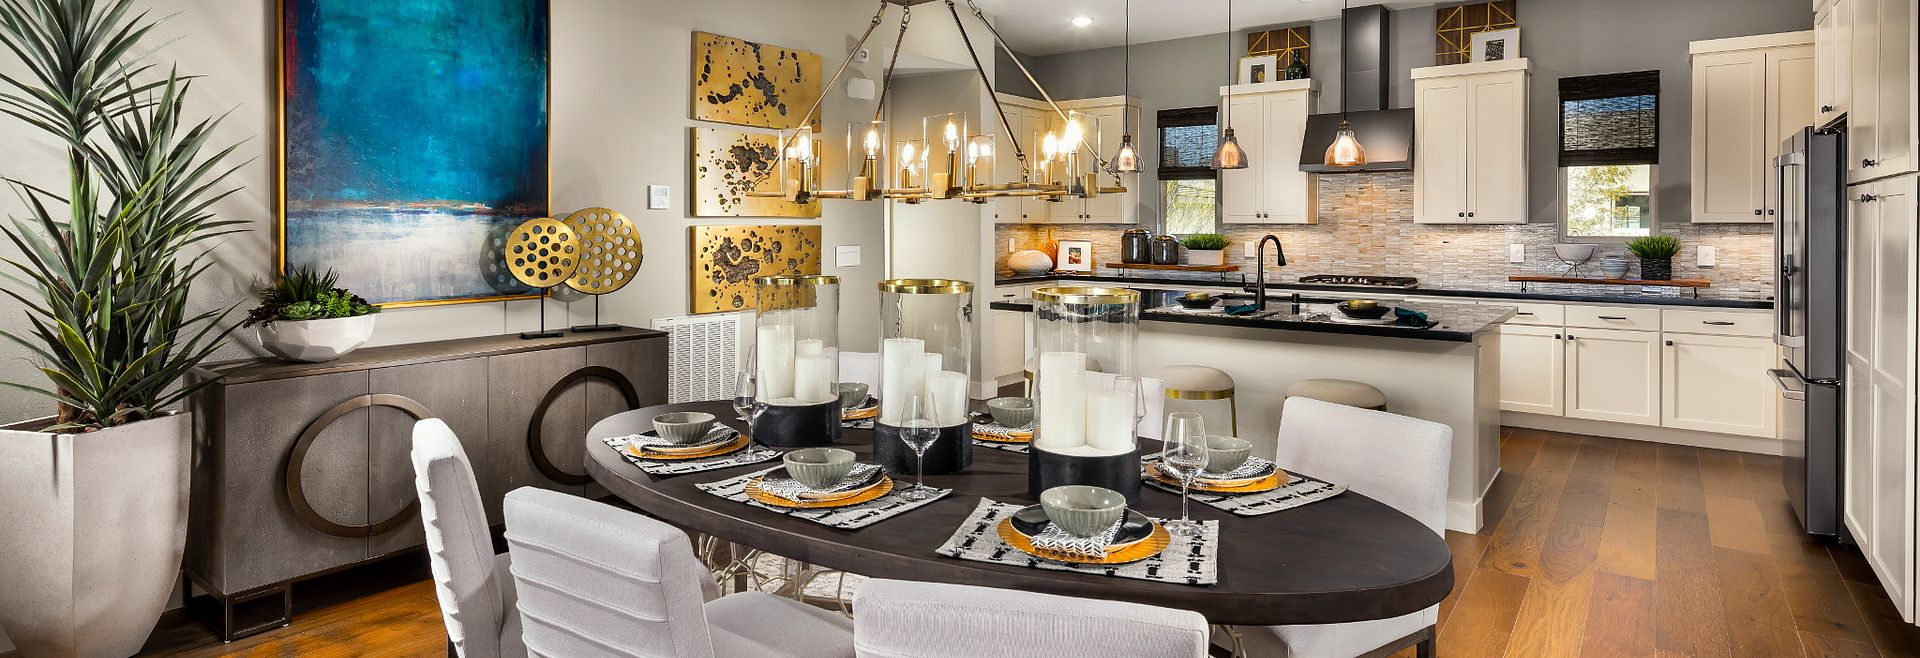 Splendor Plan Dining Room and Kitchen